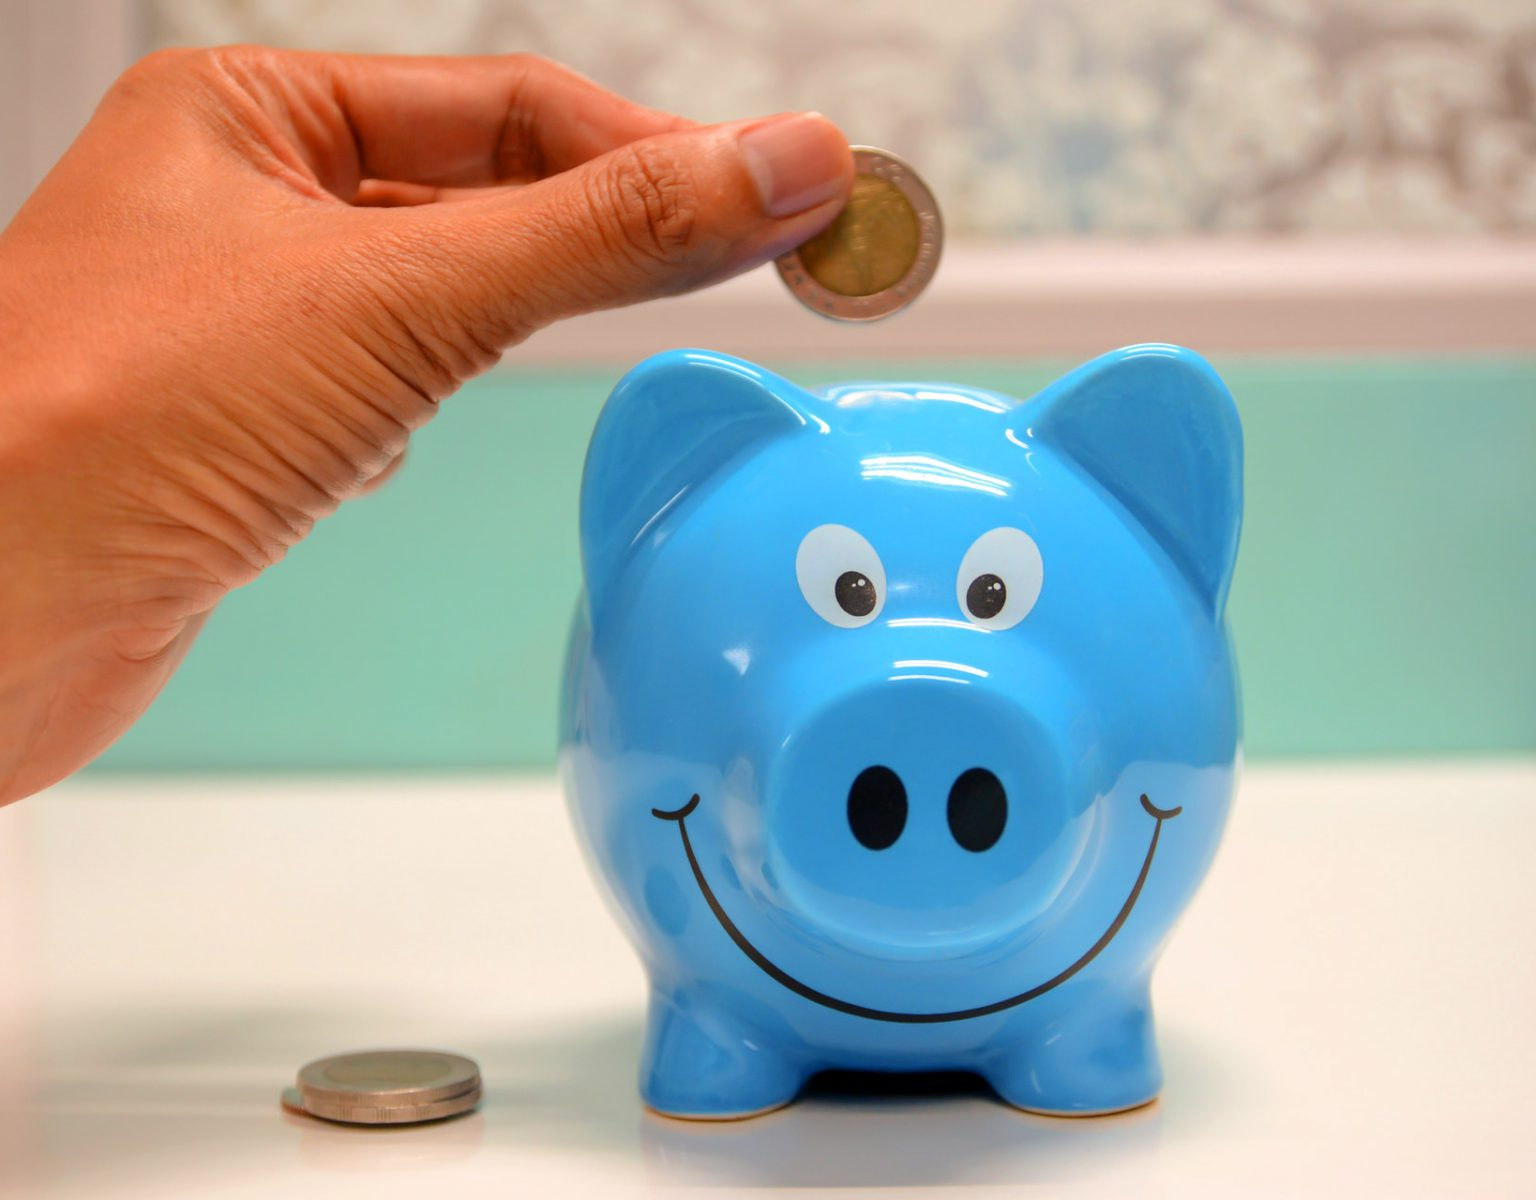 I saved $300k by 30! Following these 5 surprisingly easy things!